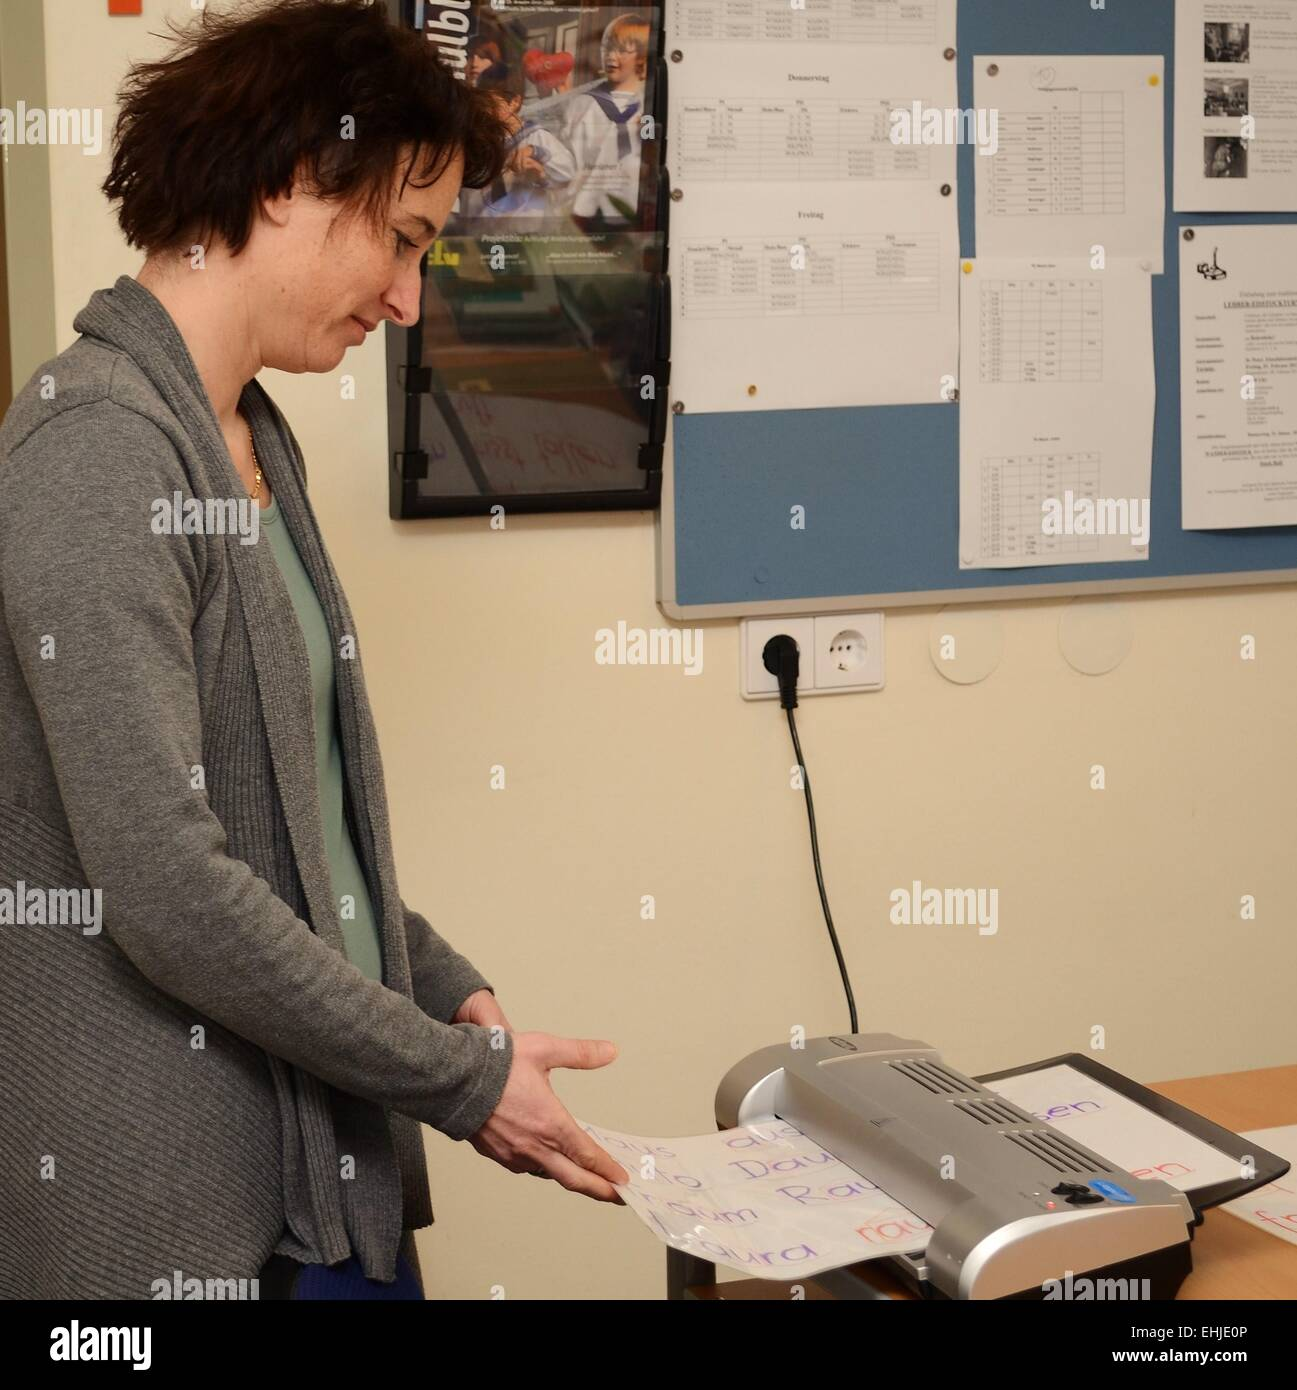 woman in the office - Stock Image